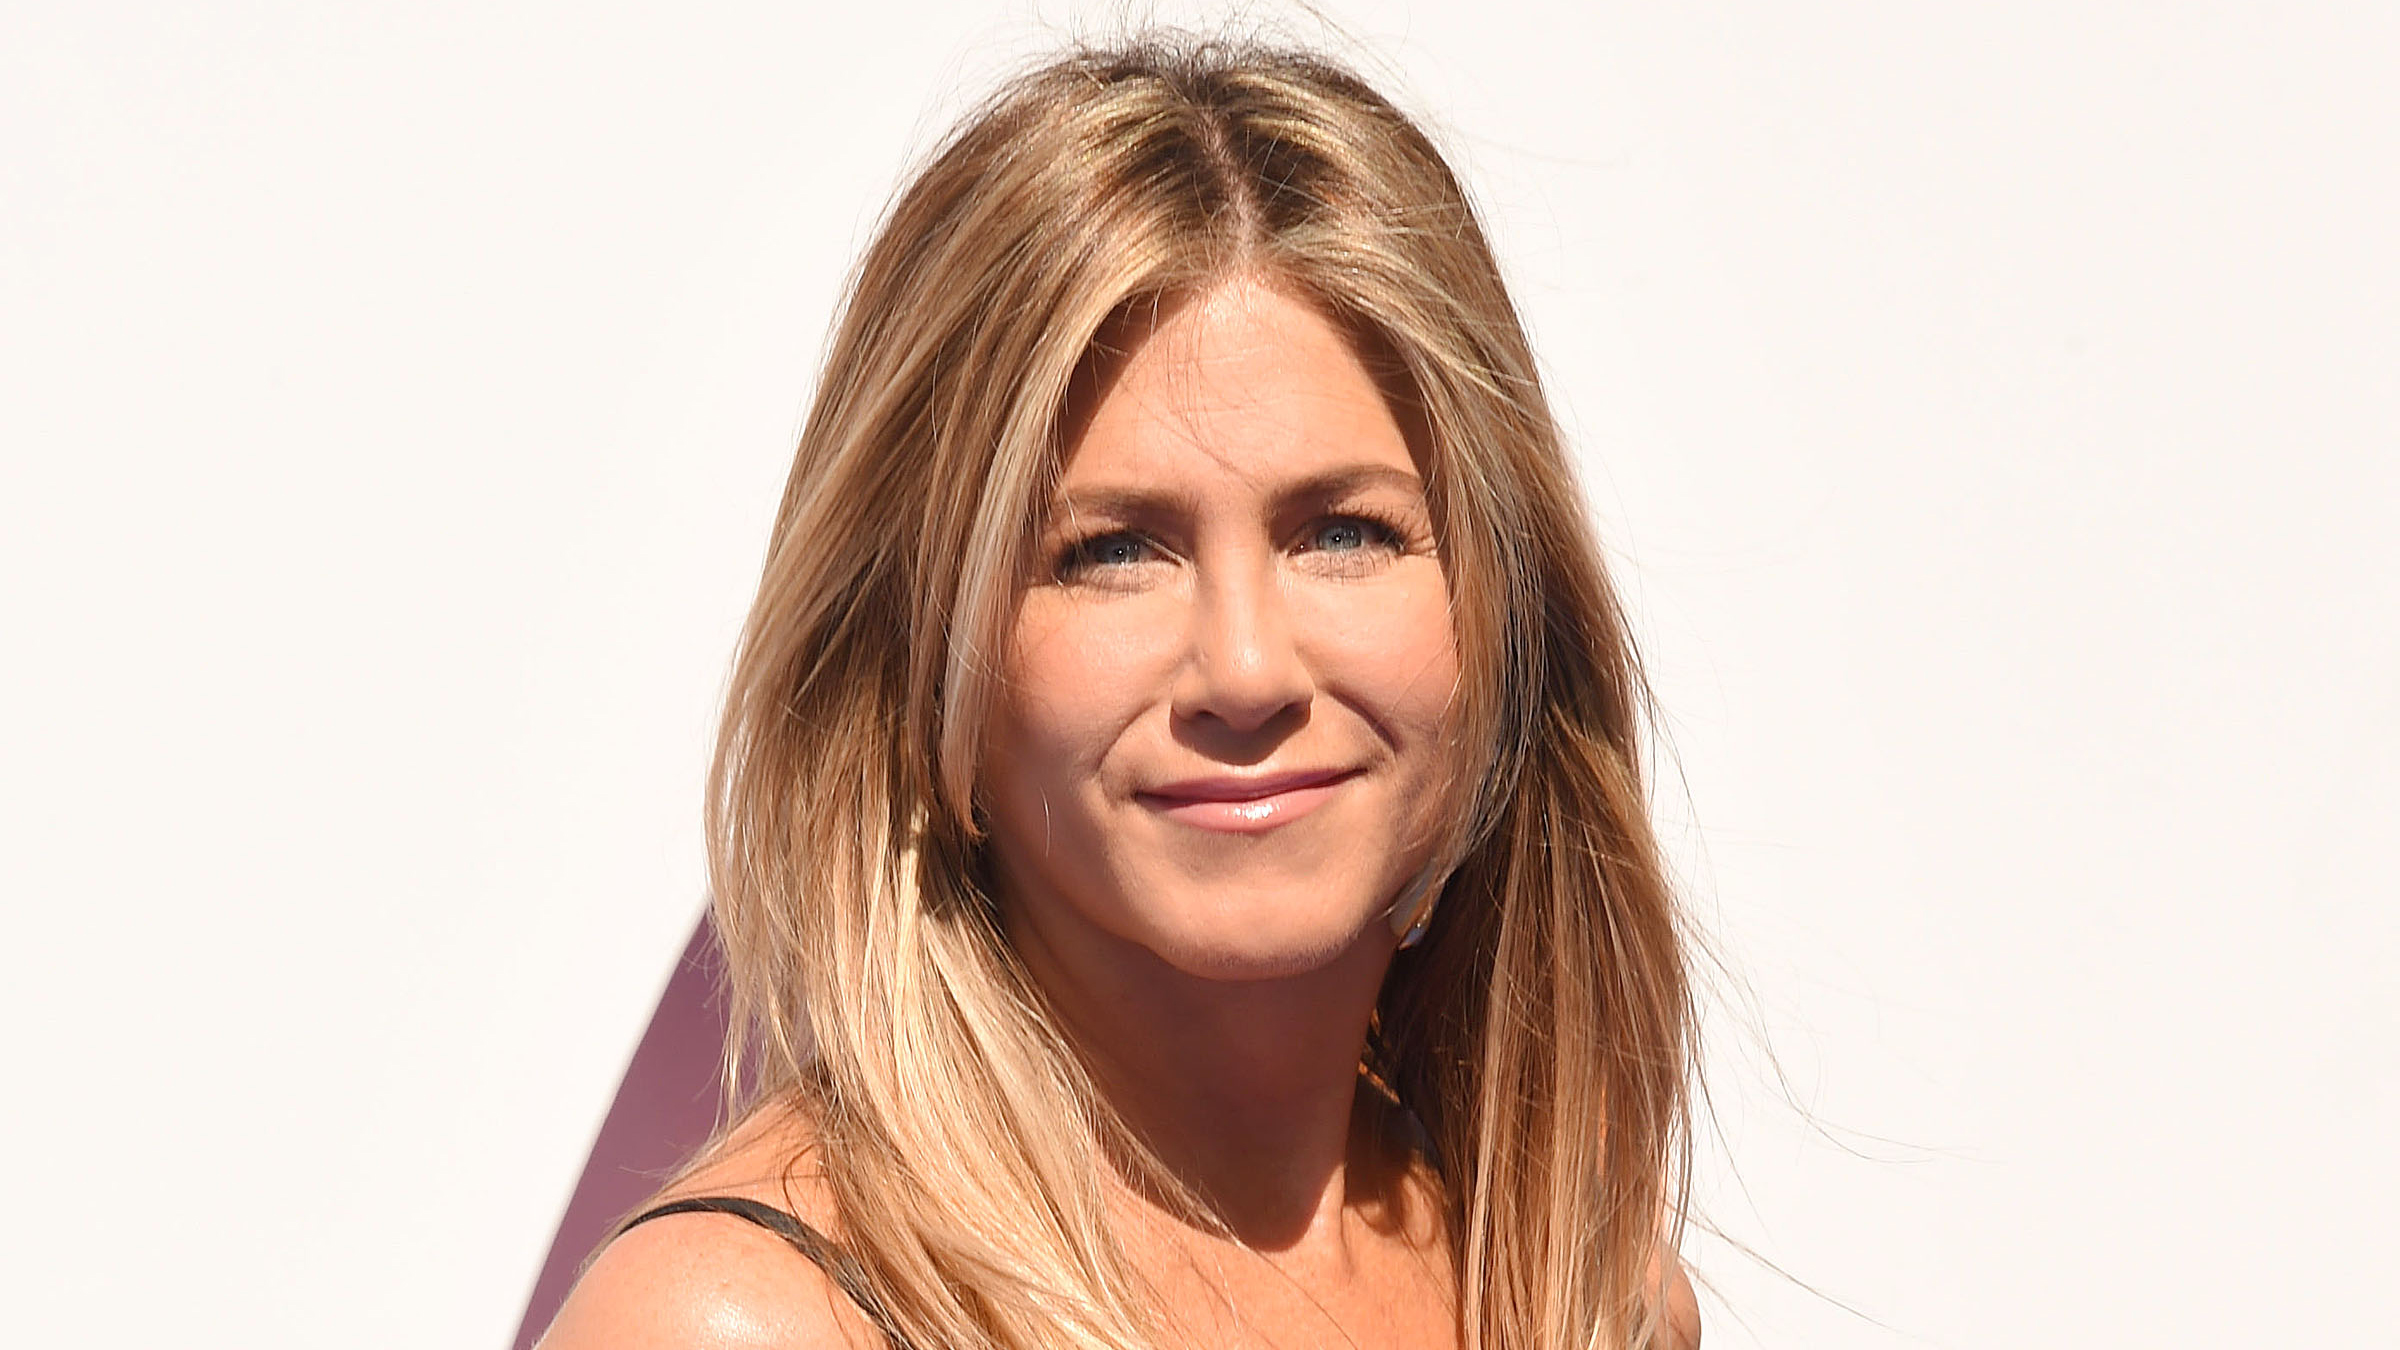 Friends Without Jennifer Aniston How That Very Nearly Happened